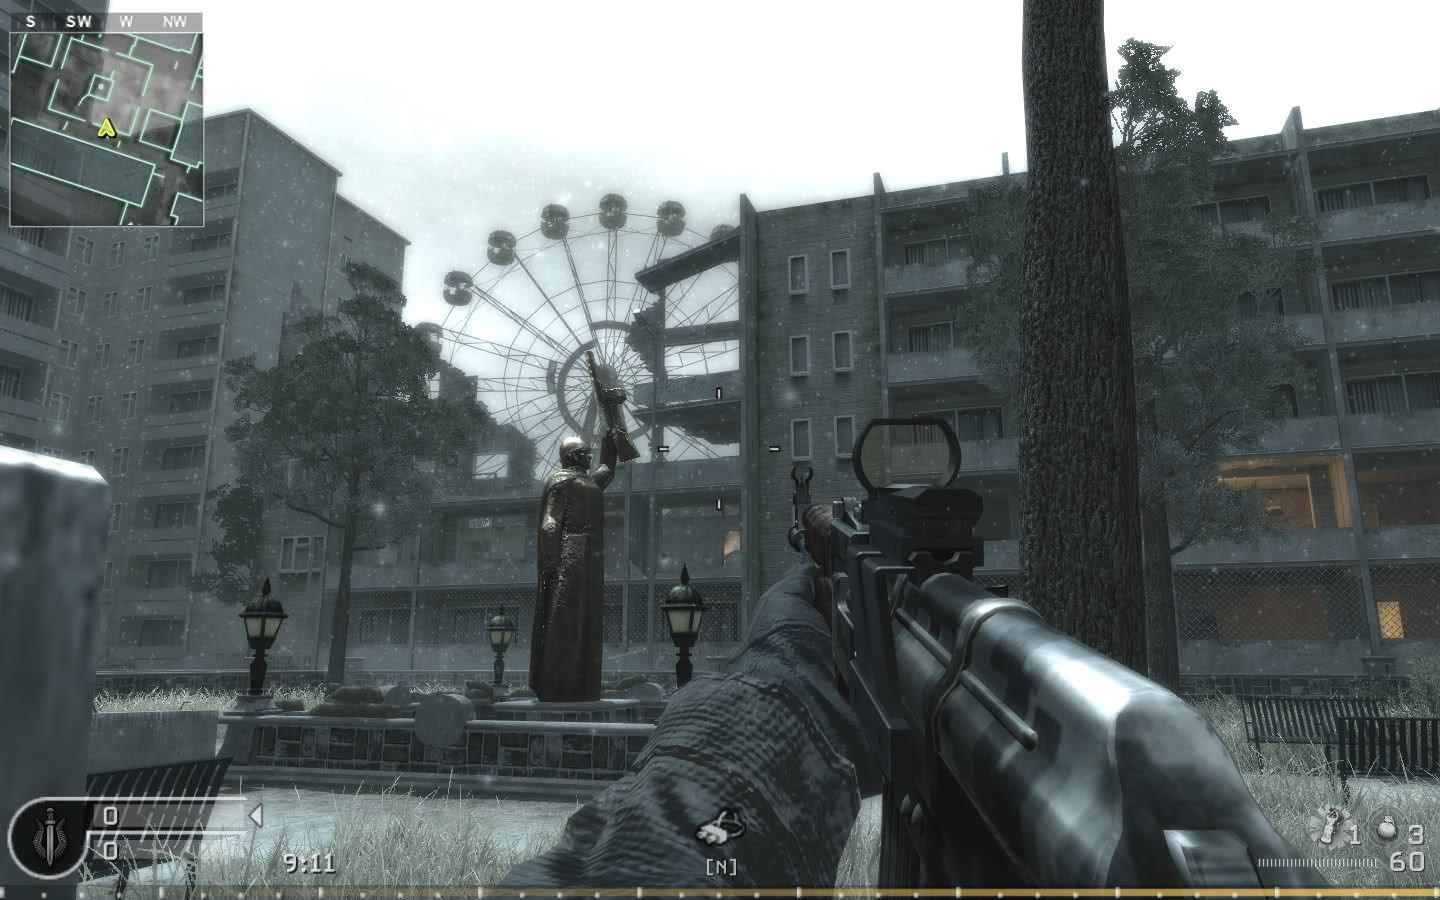 Bloc Is A Large Multiplayer Map In Call Of Duty 4 Modern Warfare Based On The Soviet Style Apartment Buildin Call Of Duty Multiplayer Call Of Duty Activision